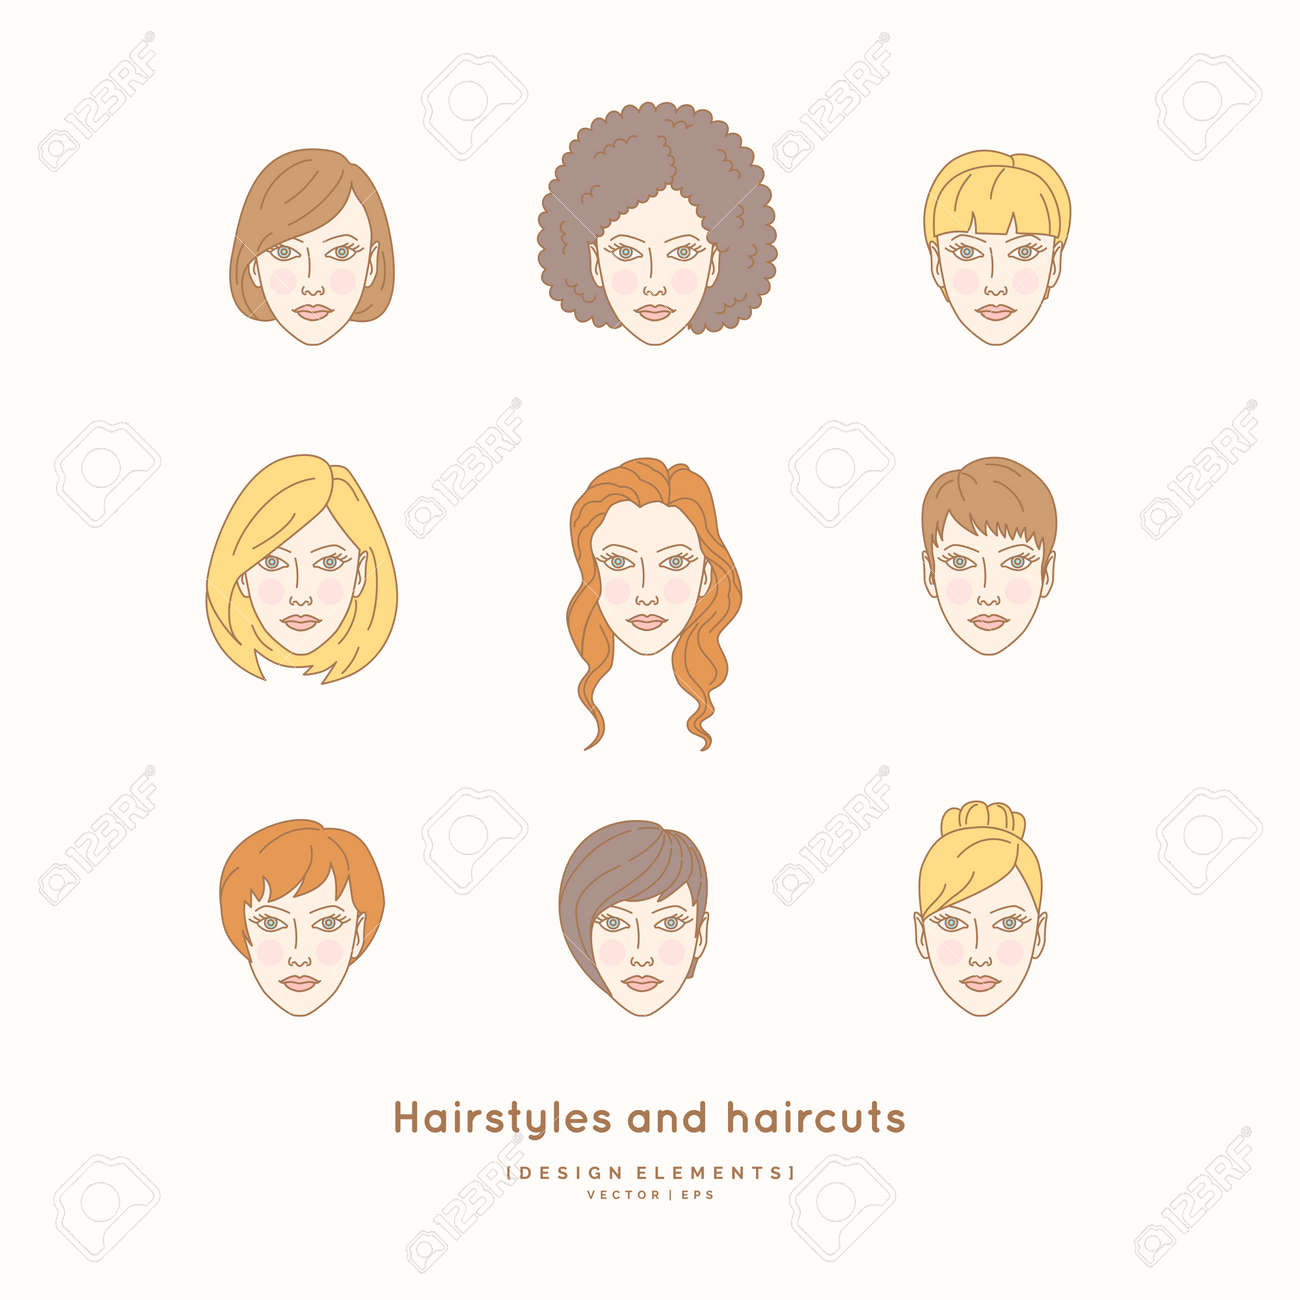 Set Of Female Faces With Different Hairstyles And Haircuts